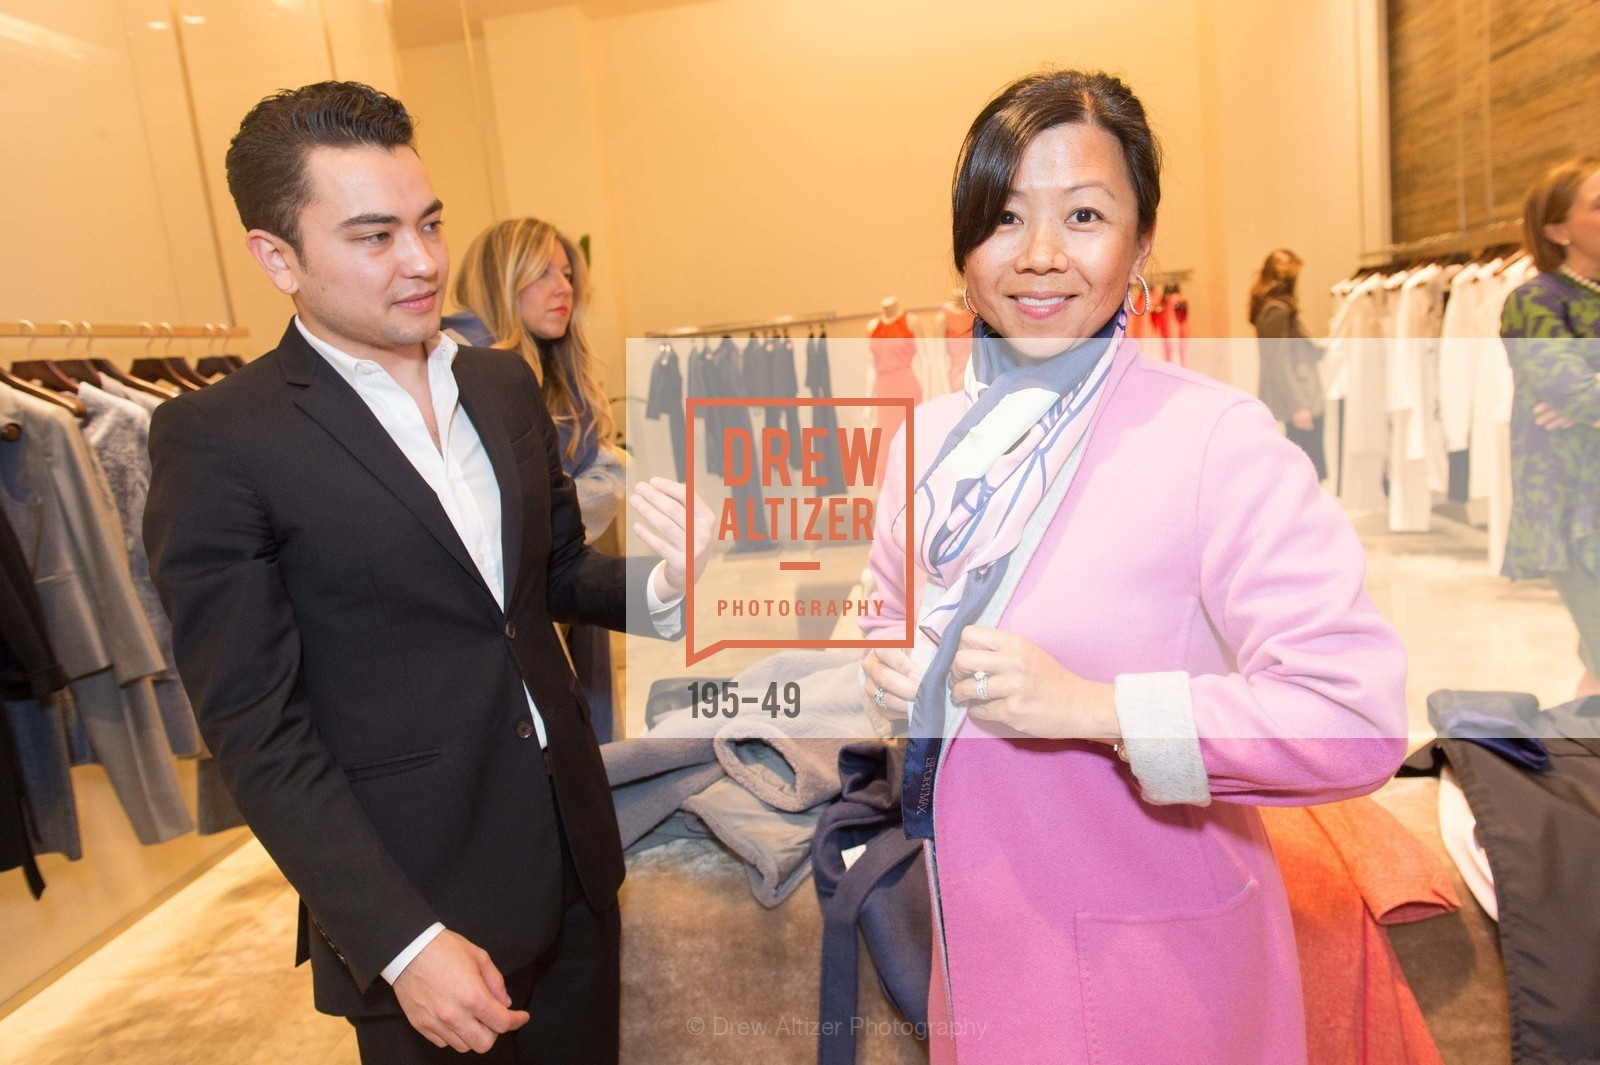 Brant Sumida, Wendy Fraser, Luncheon Hosted by Max Mara, Max Mara. 175 Post St, San Francisco, CA 94108, April 21st, 2015,Drew Altizer, Drew Altizer Photography, full-service agency, private events, San Francisco photographer, photographer california